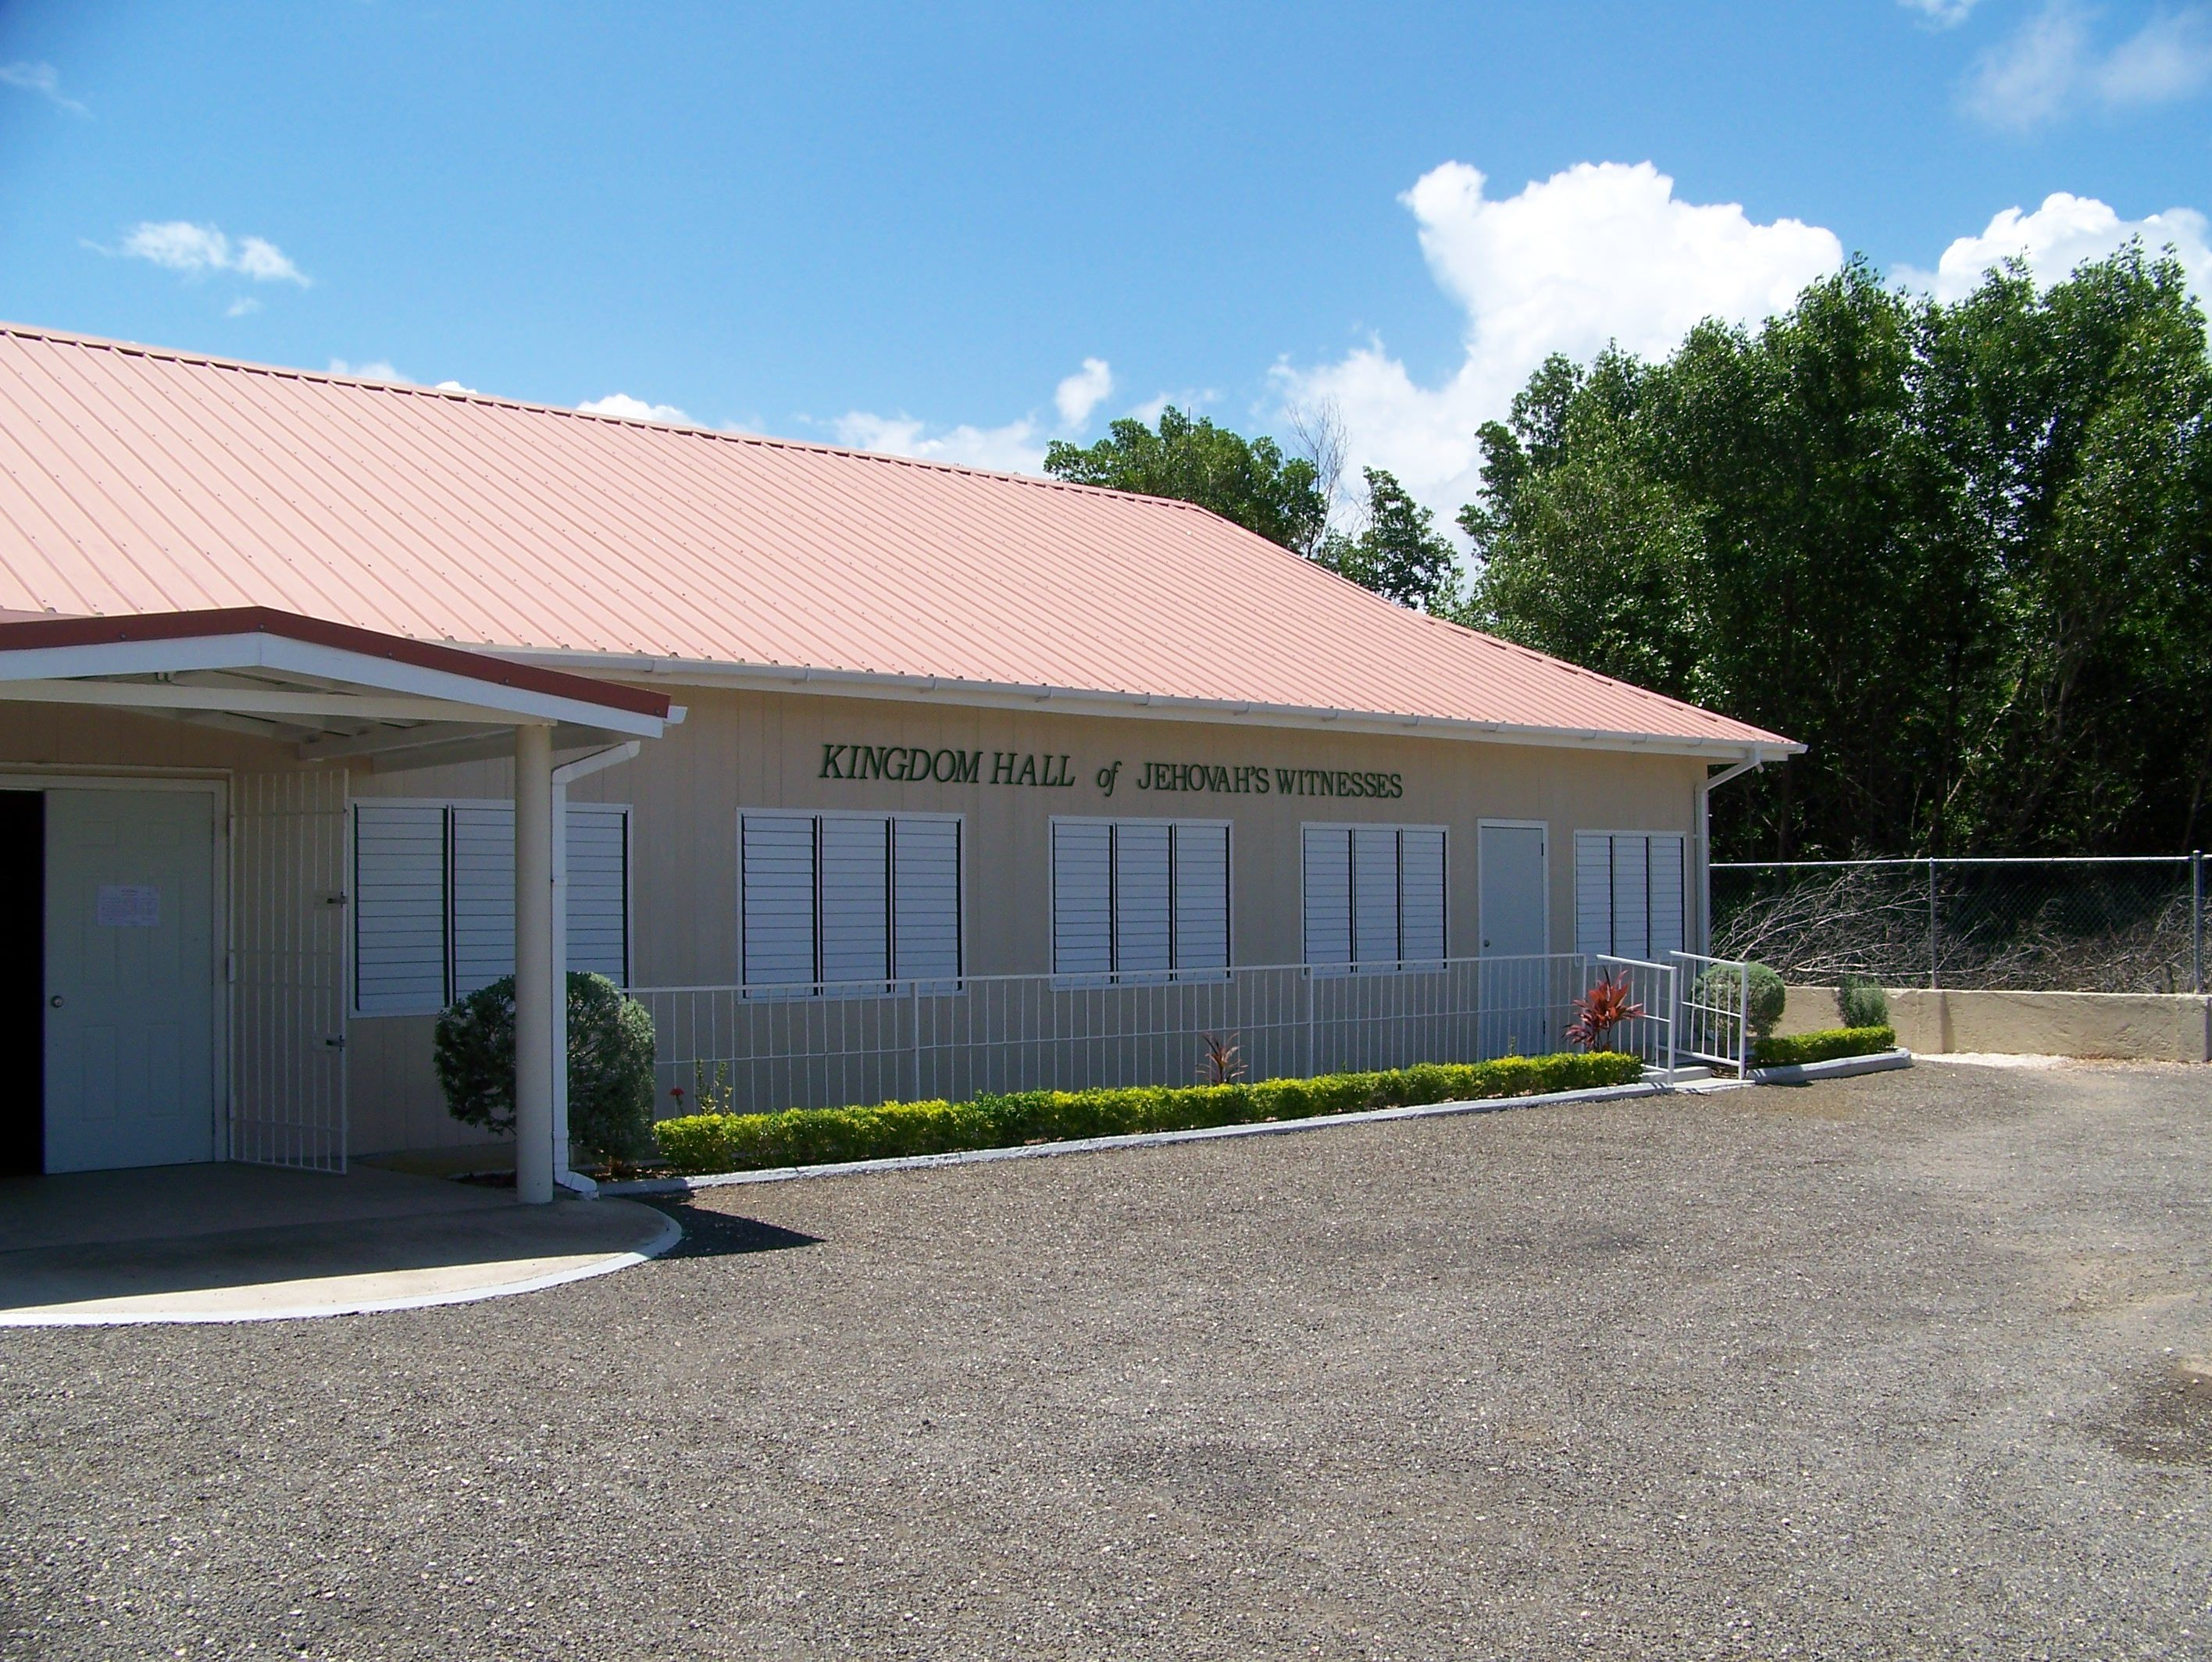 Kingdom Hall In Falmouth Jamaica Kingdom Halls Around